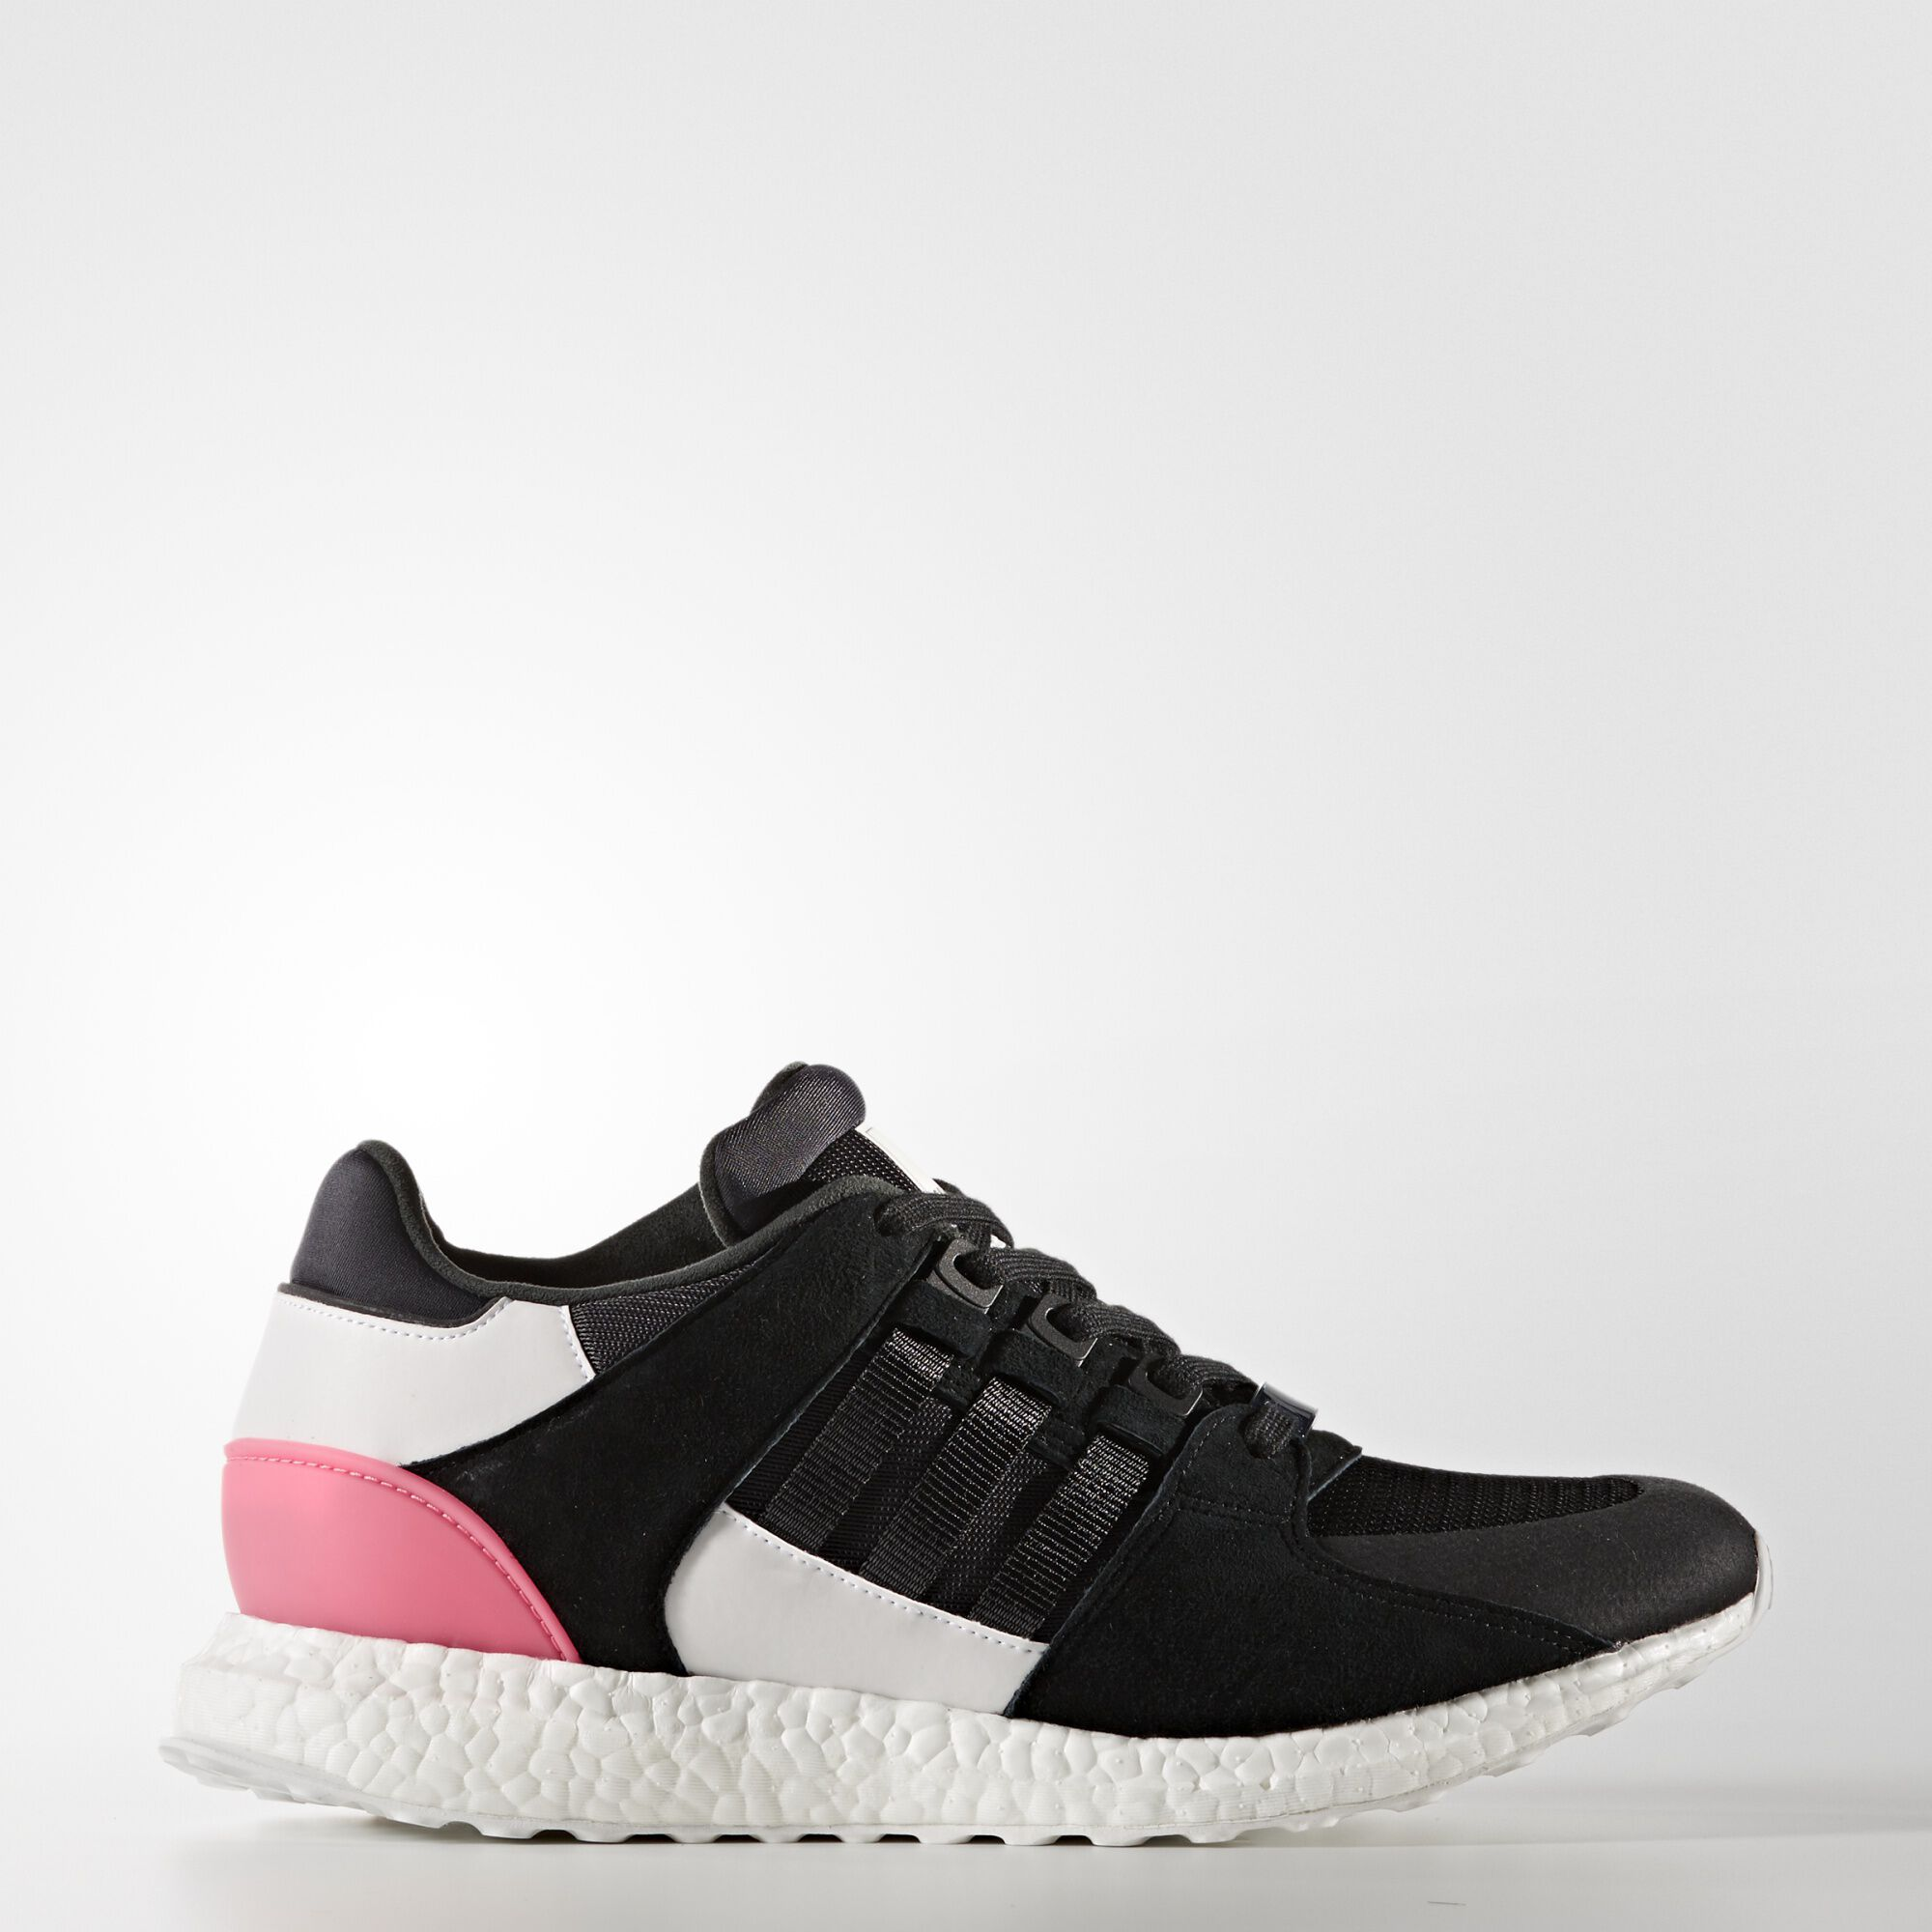 adidas eqt support ultra shoes black adidas us. Black Bedroom Furniture Sets. Home Design Ideas